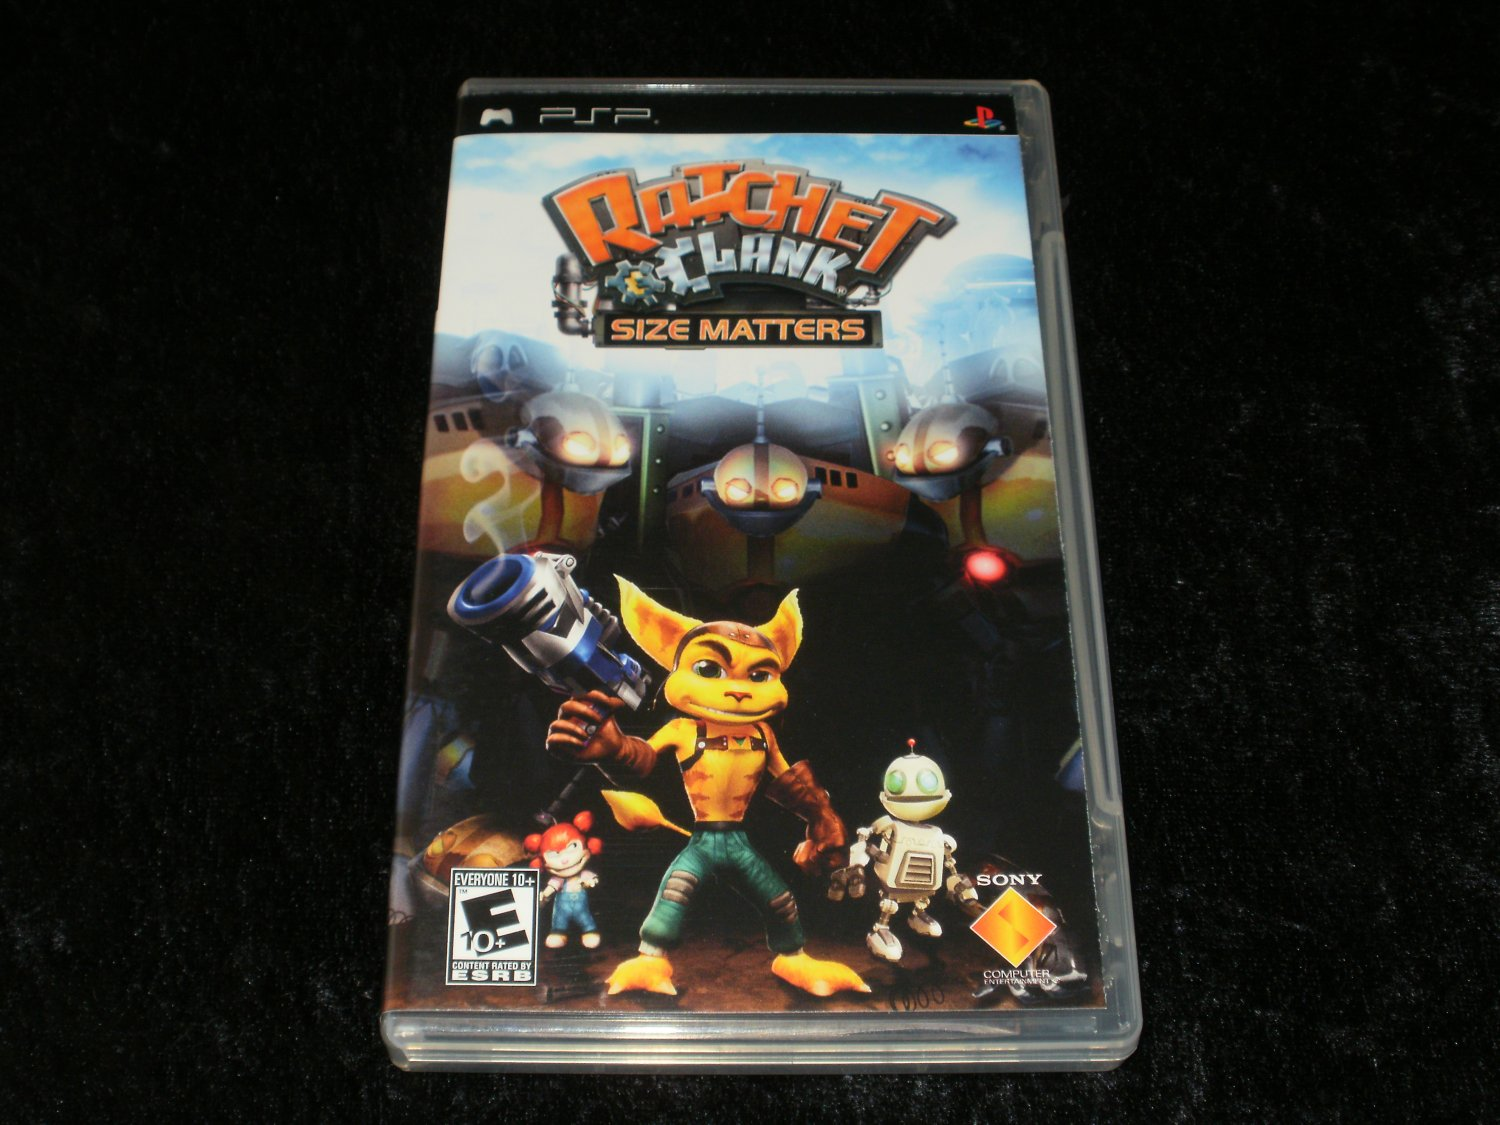 Ratchet & Clank Size Matters - Sony PSP - Complete CIB